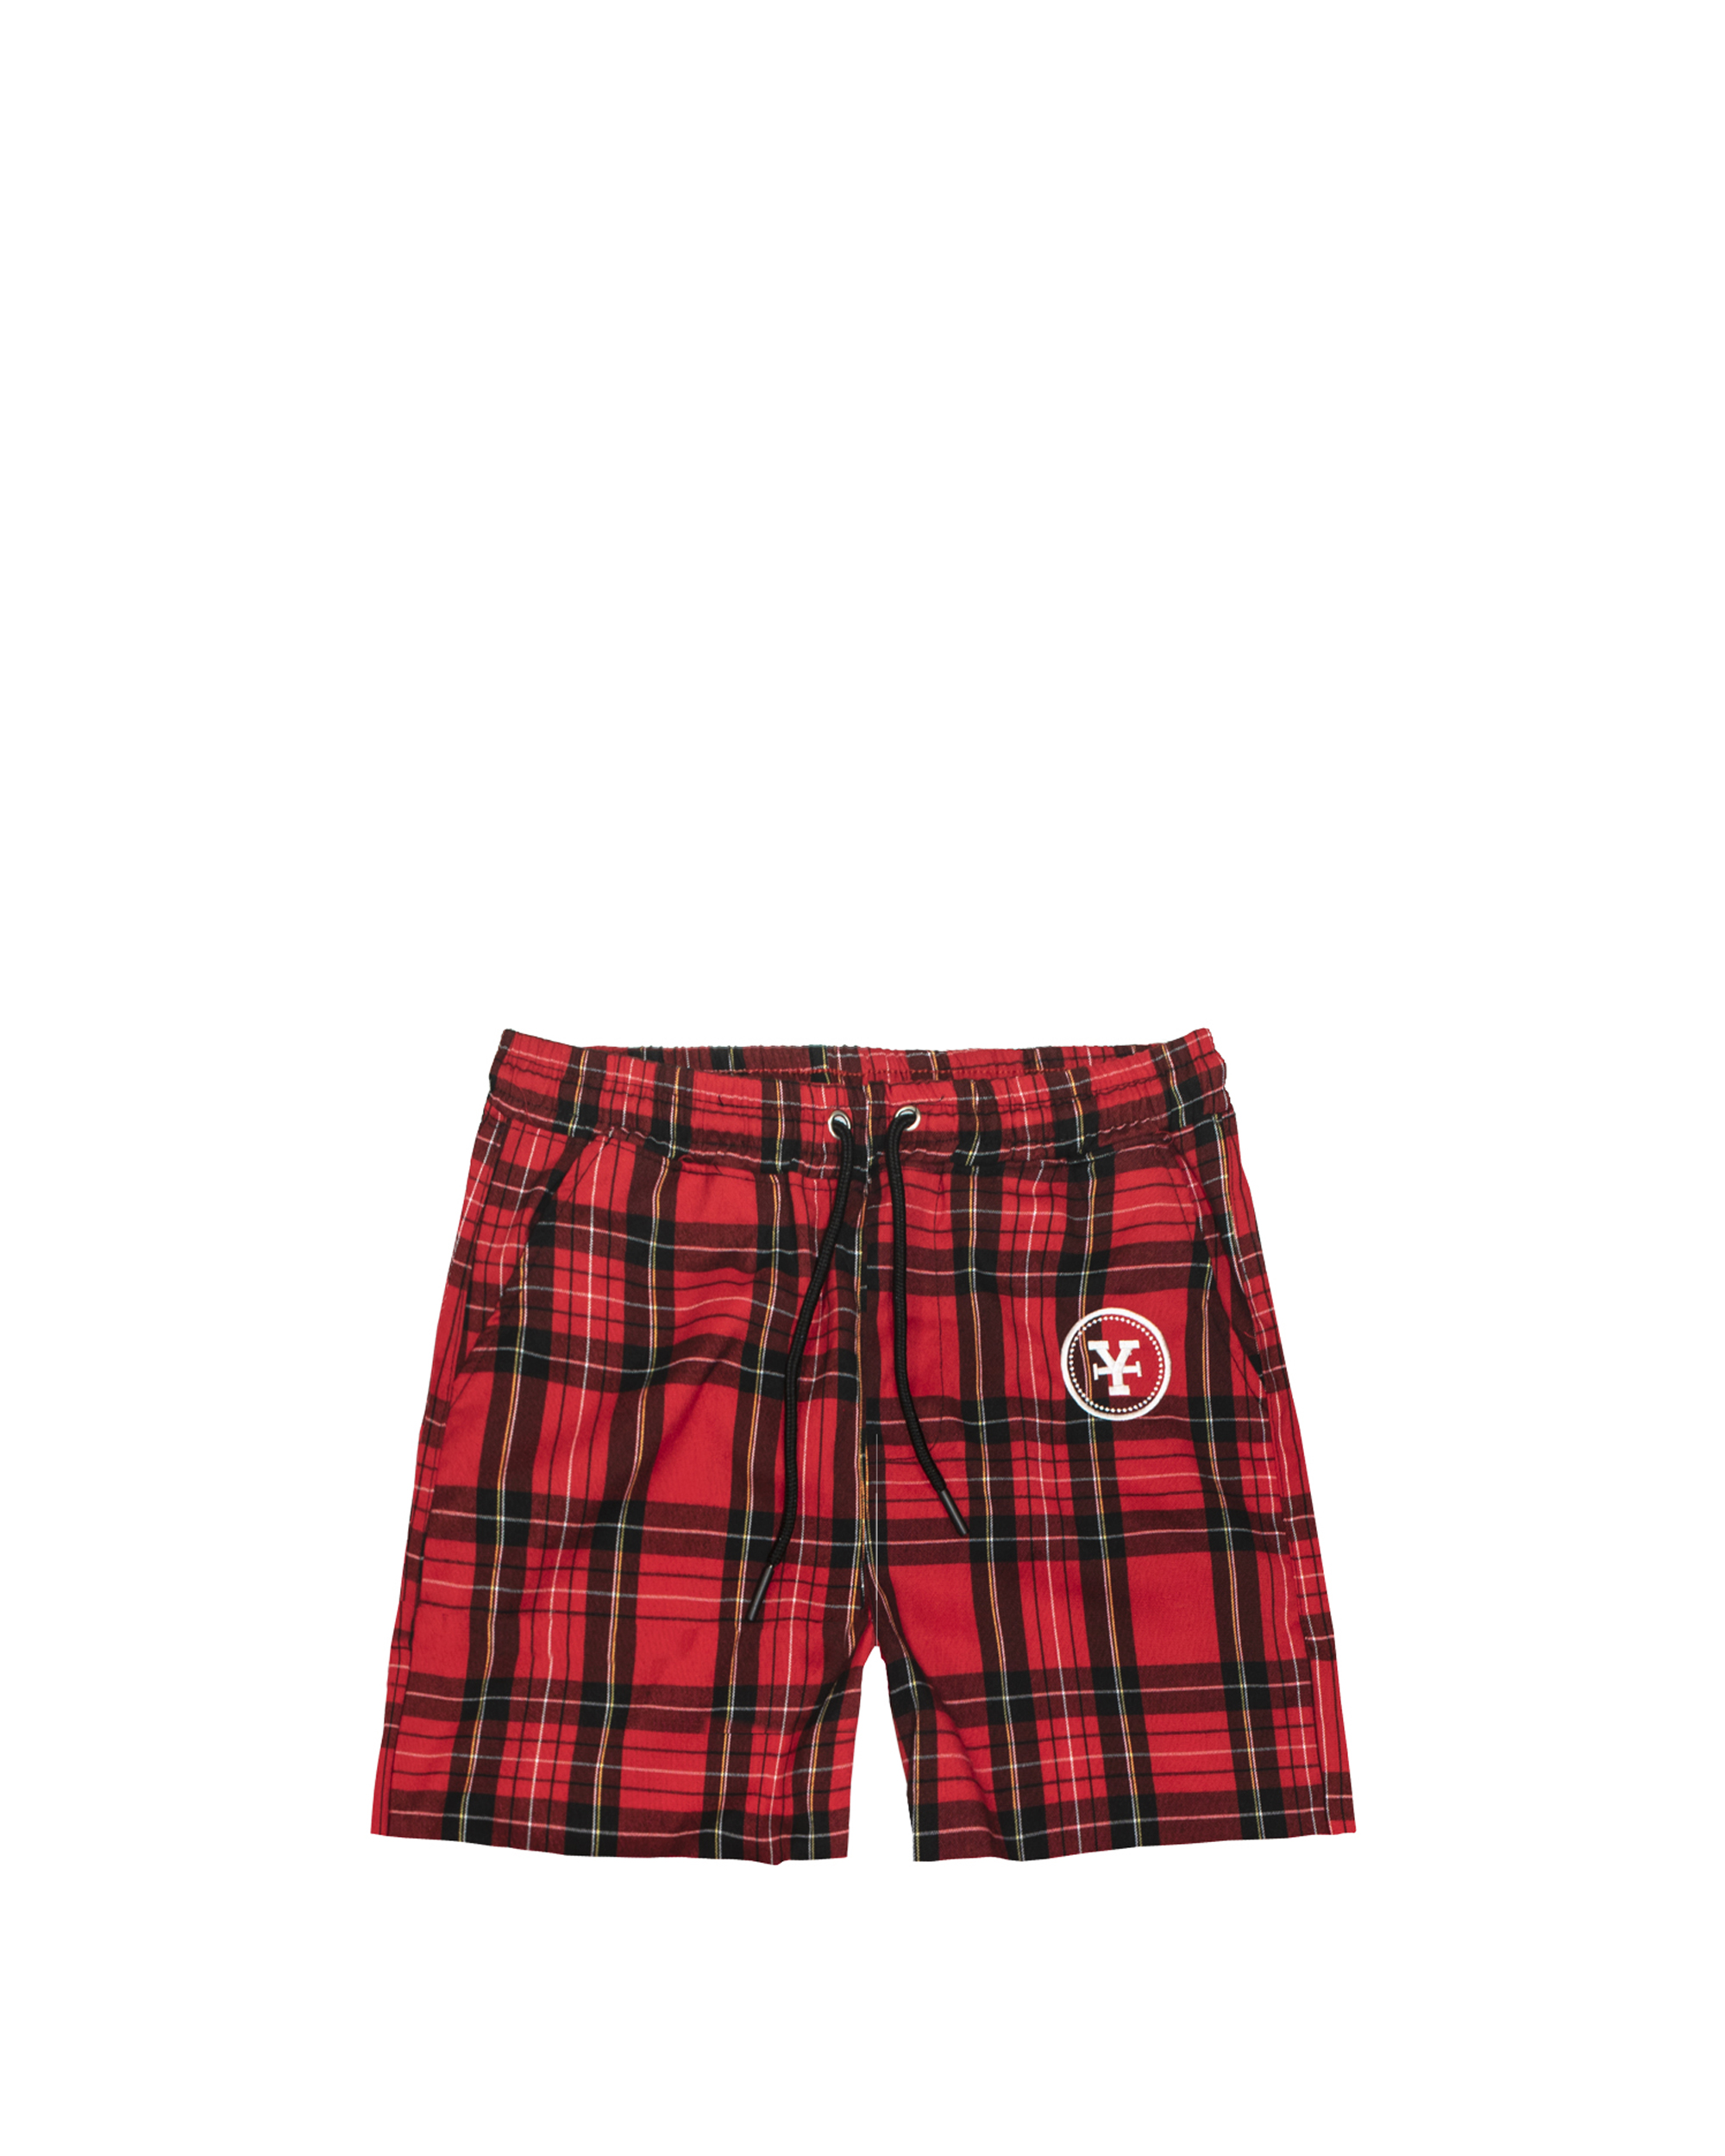 DirtyCoins Plaid Shorts In Bred